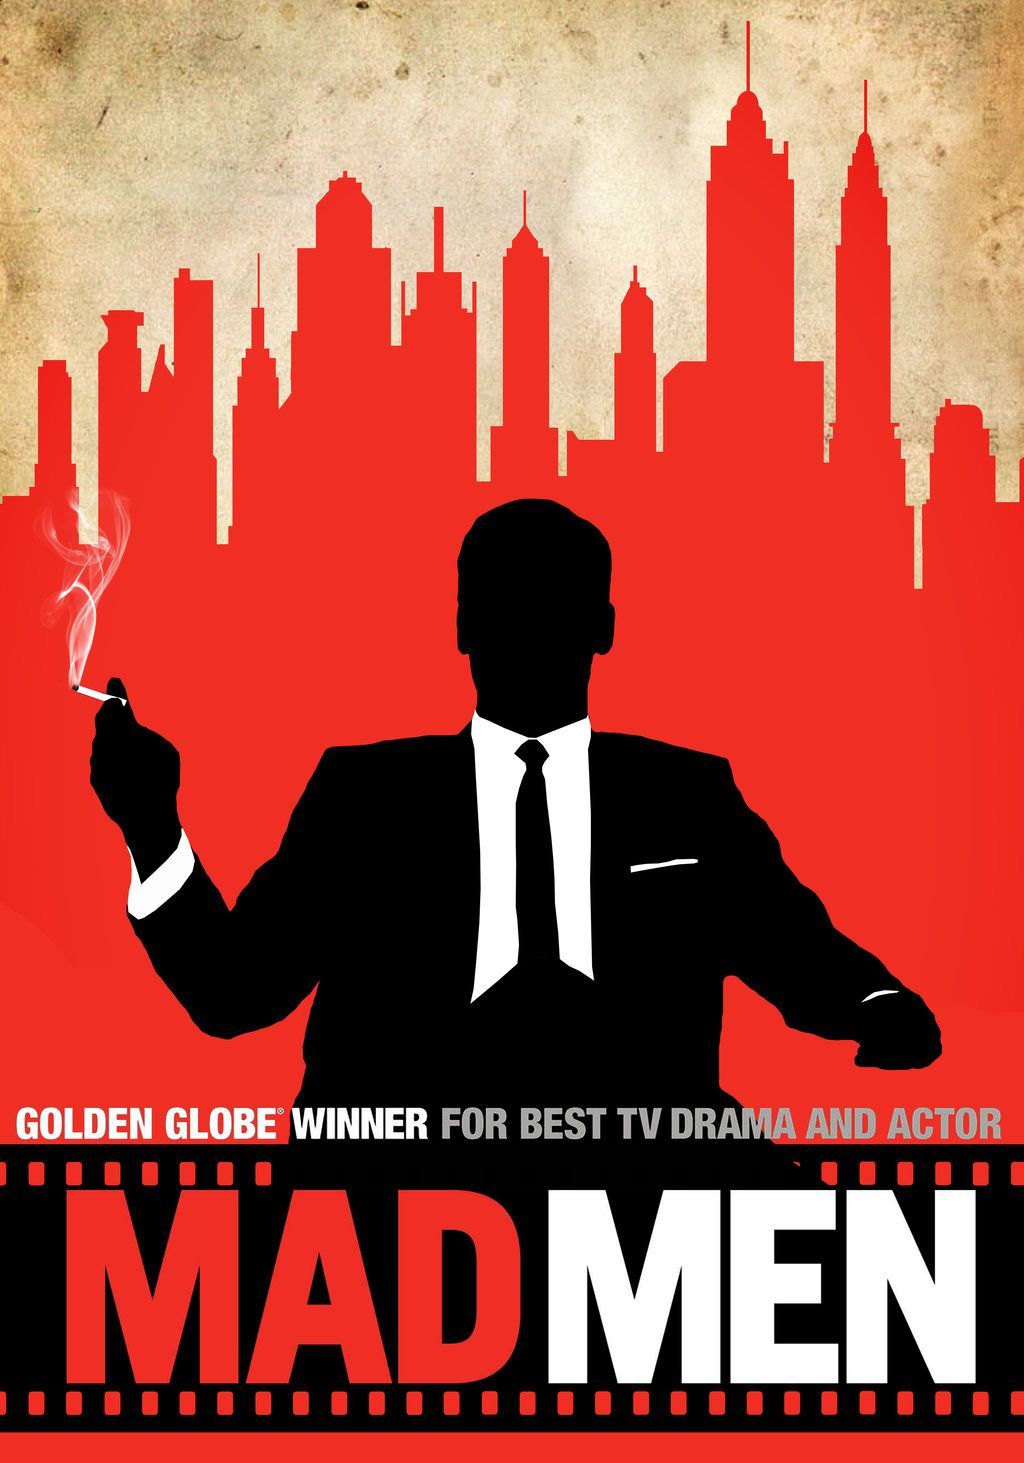 mad_men_poster_by_supafly_01-d6pol34.jpg (1024×1463) | Mad ...